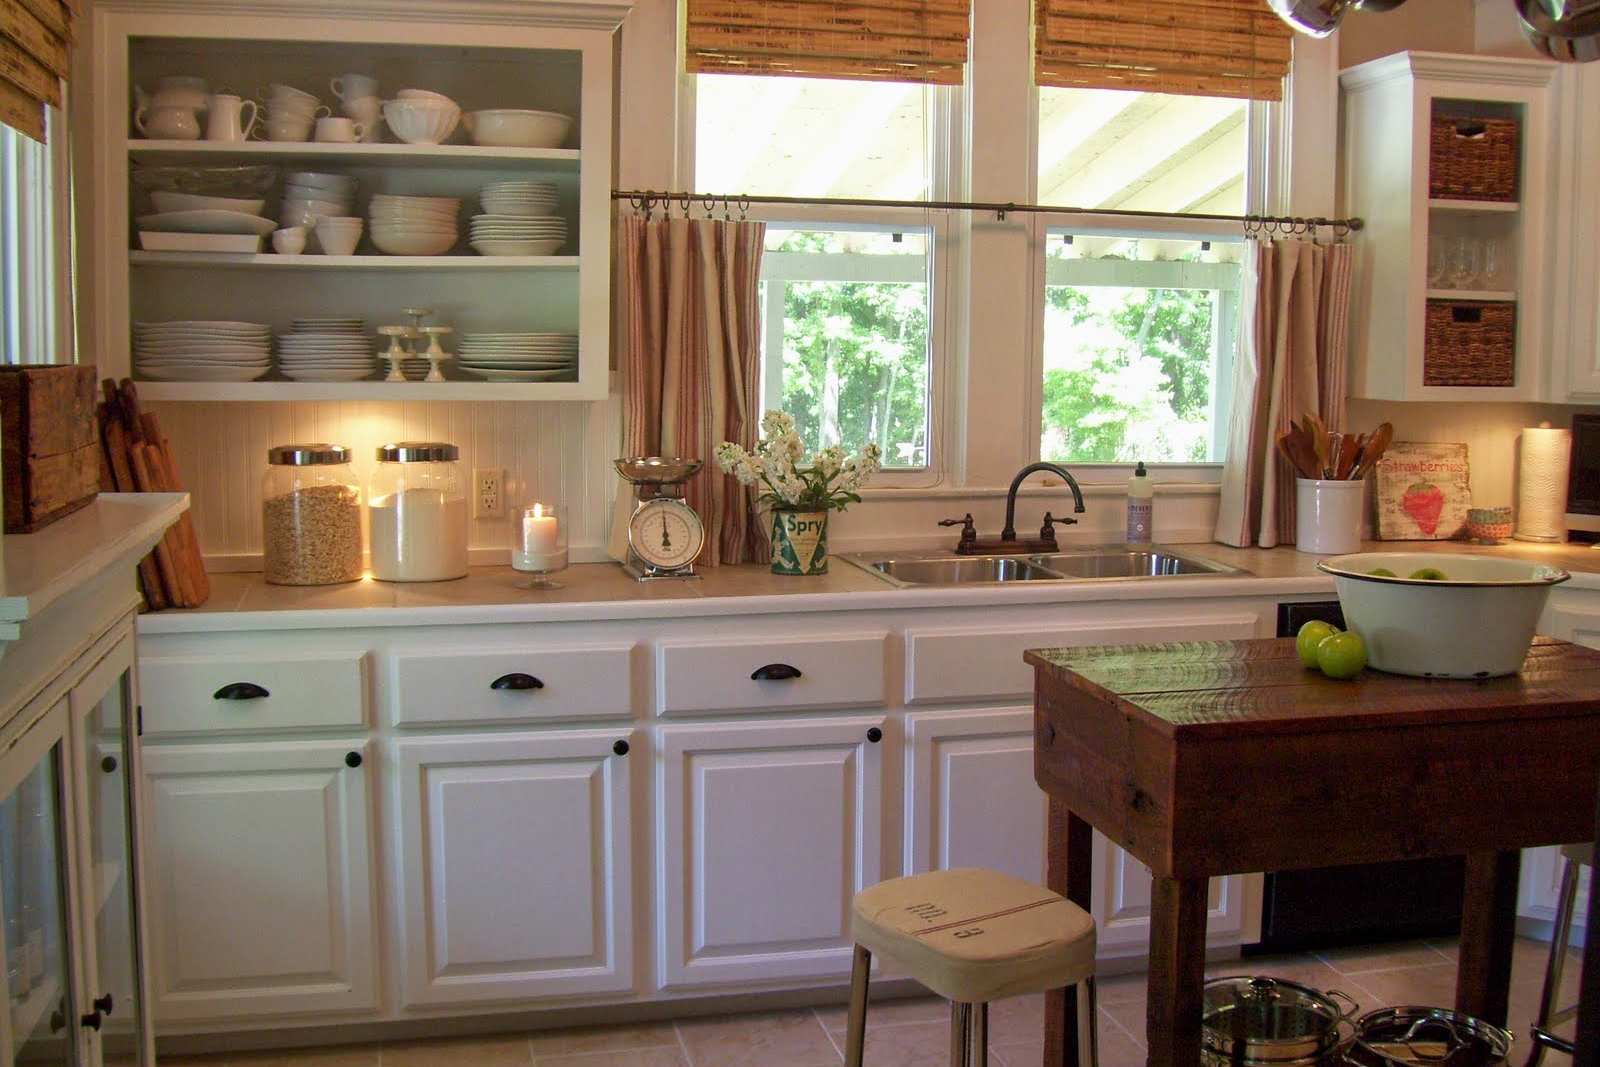 Kitchen Remodeling Ideas On A Budget remodeling a kitchen | do it yourself kitchen remodel